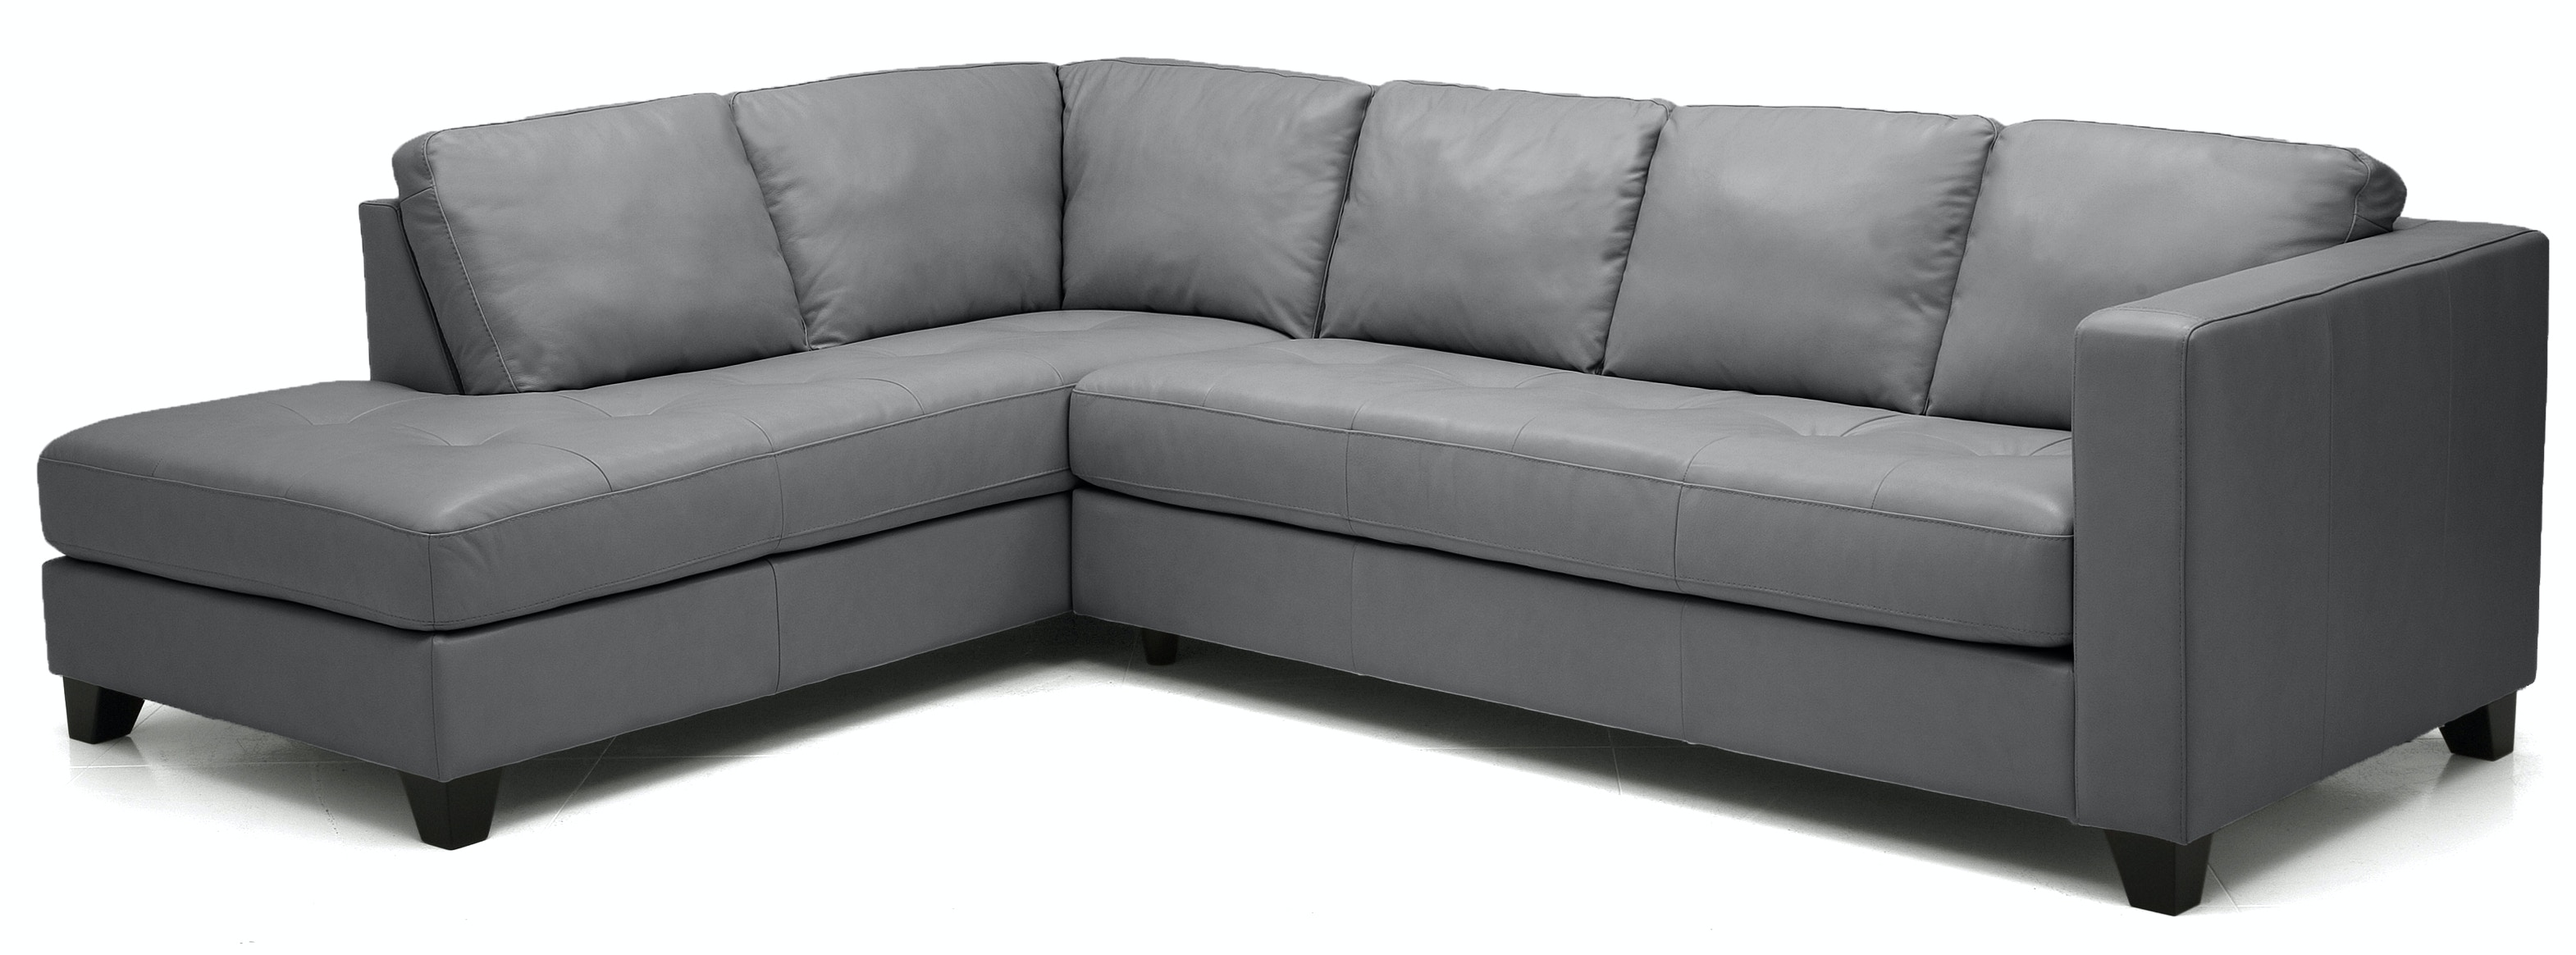 Palliser Furniture Jura Sectional 547427 547429  sc 1 st  Talsma Furniture : palliser leather sectional - Sectionals, Sofas & Couches